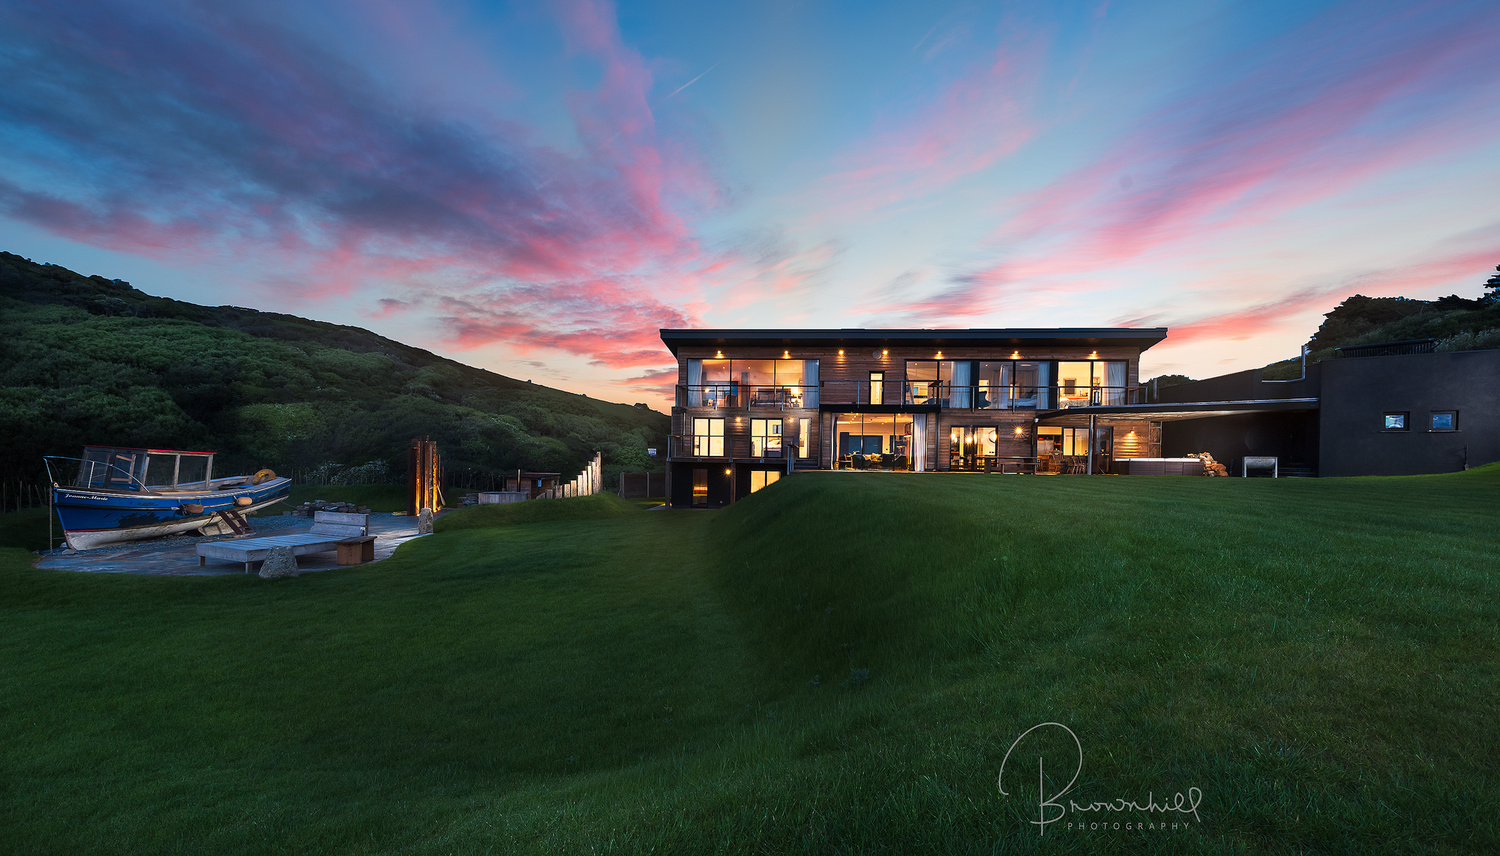 Wantson Beach holiday home by stephen brownhill